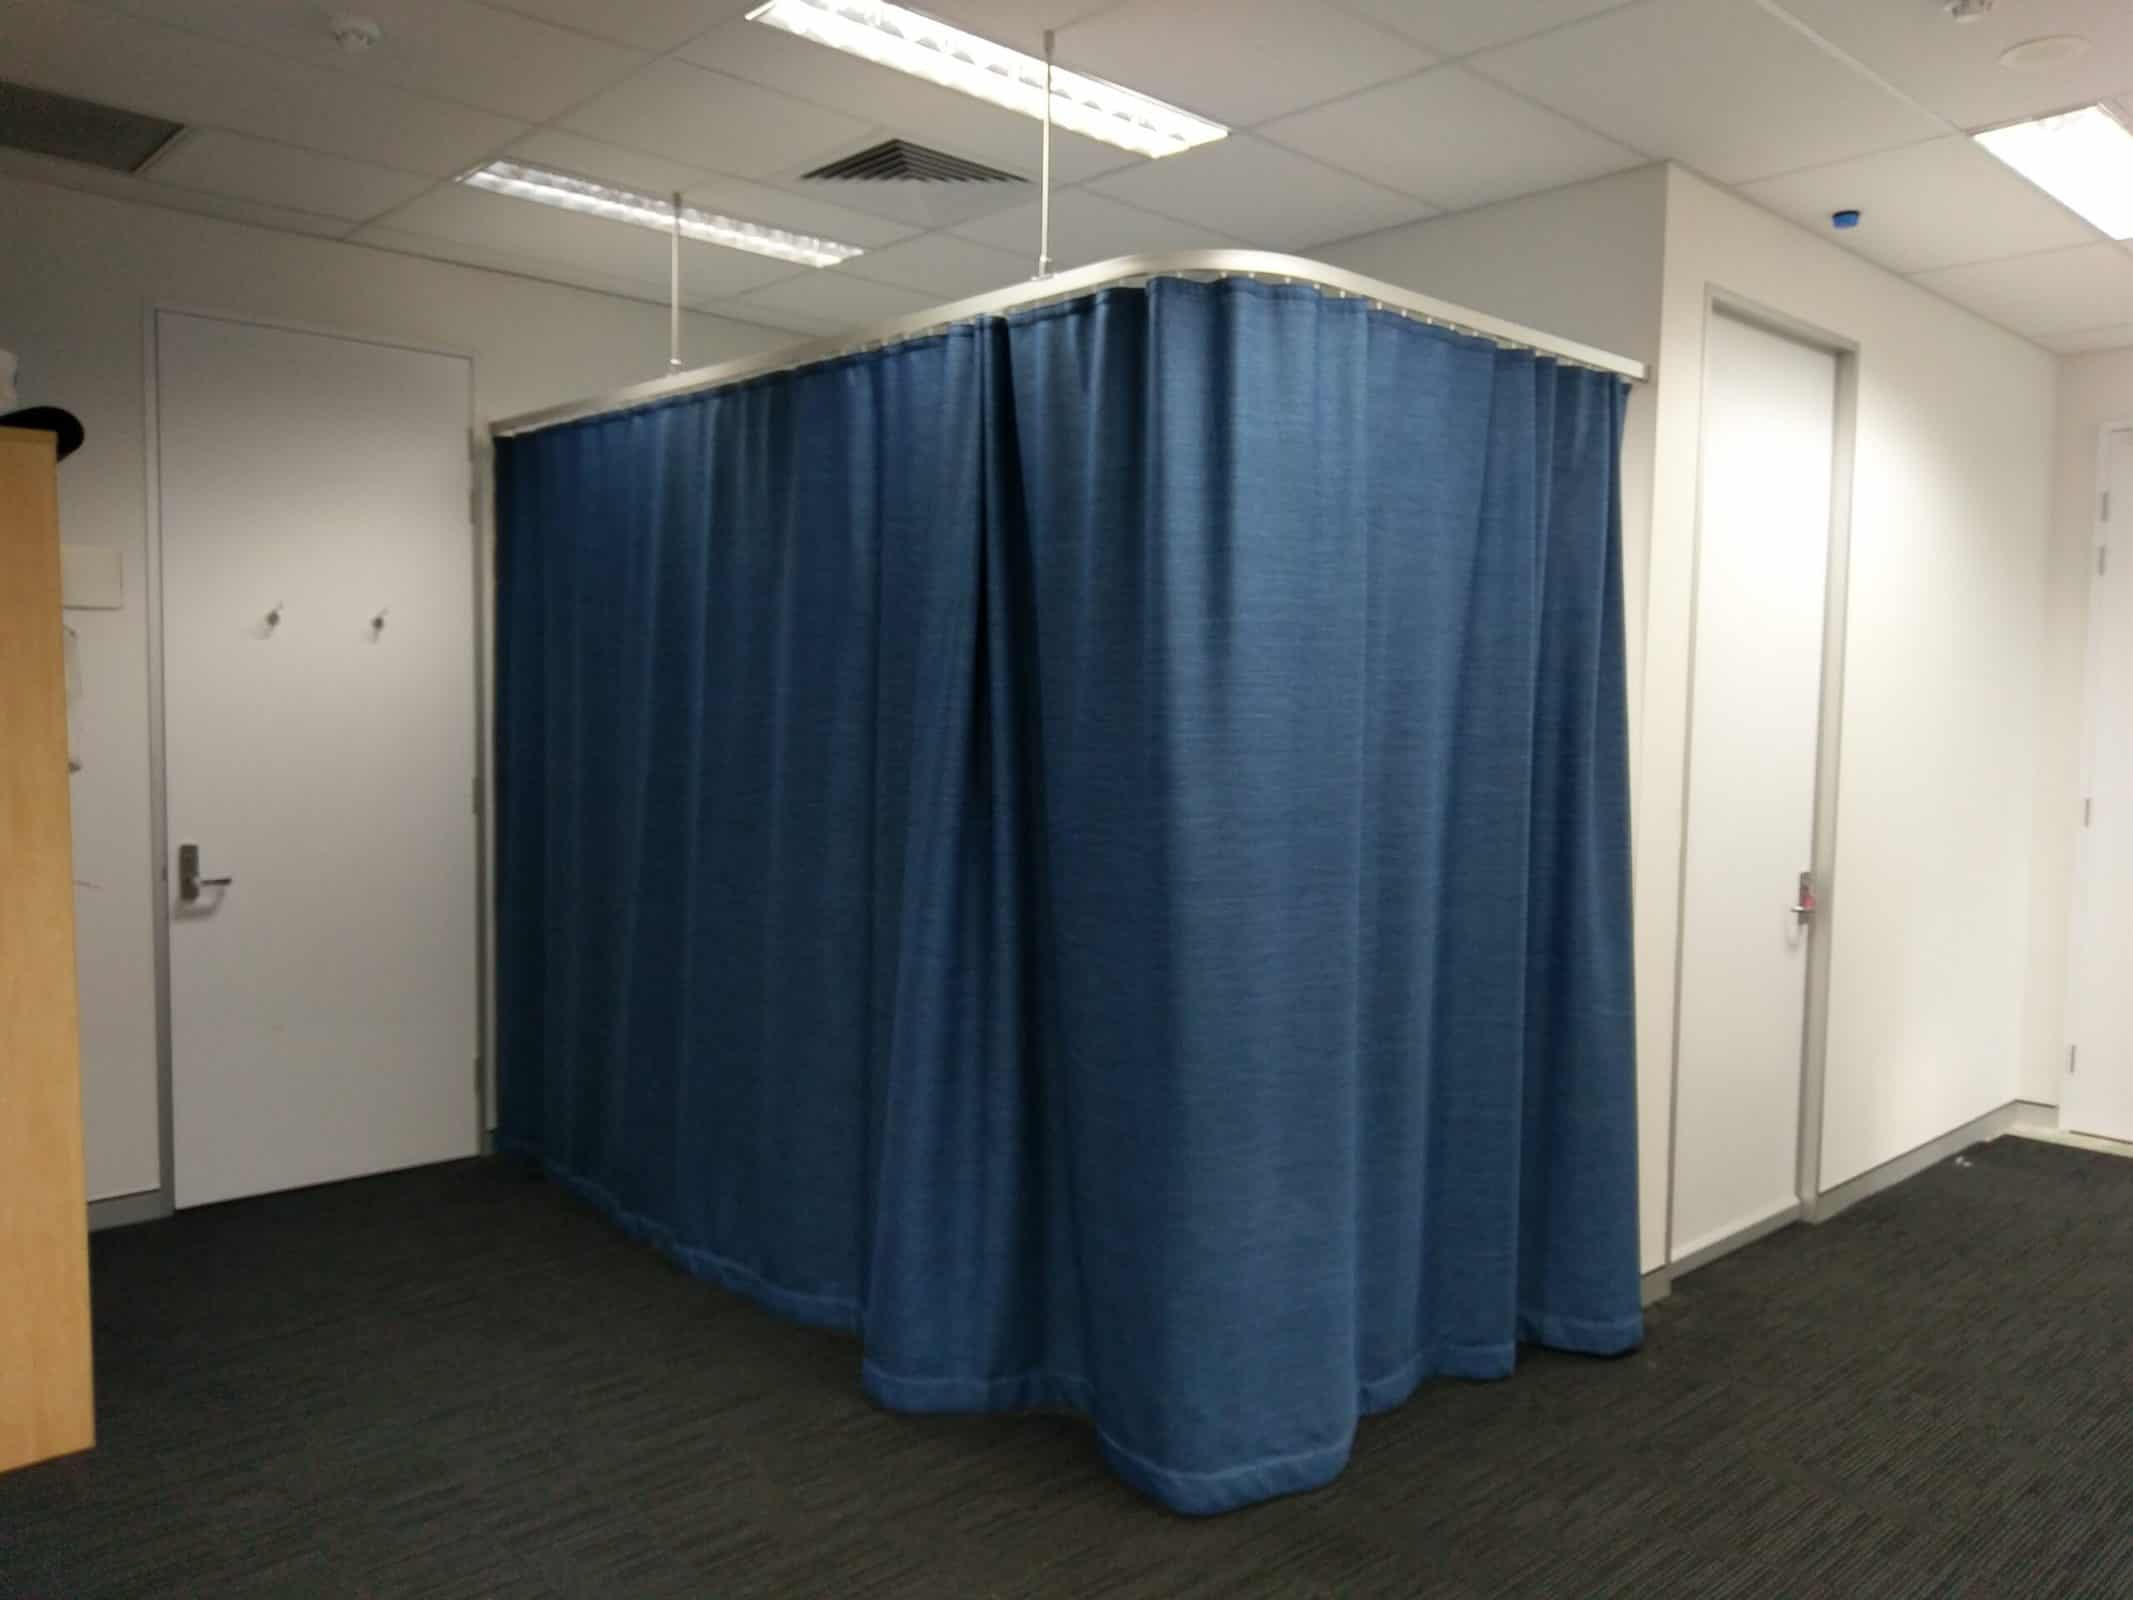 Hospital Curtain Tracks - Curtains Newcastle - Somerset Curtains & Blinds Newcastle